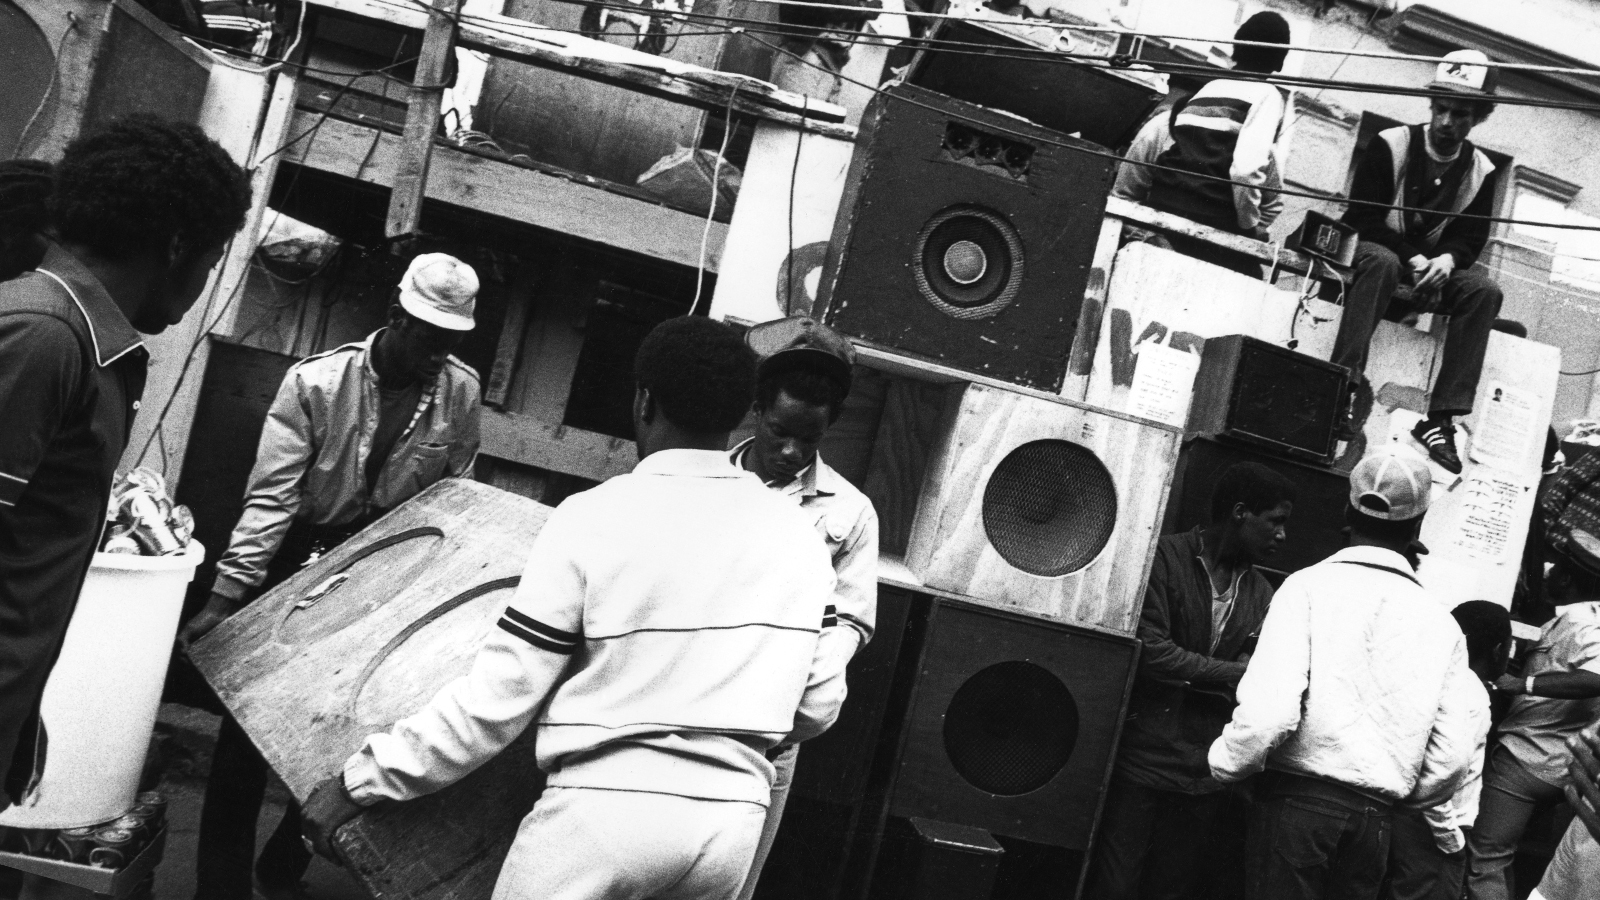 Sound systems - The British Library